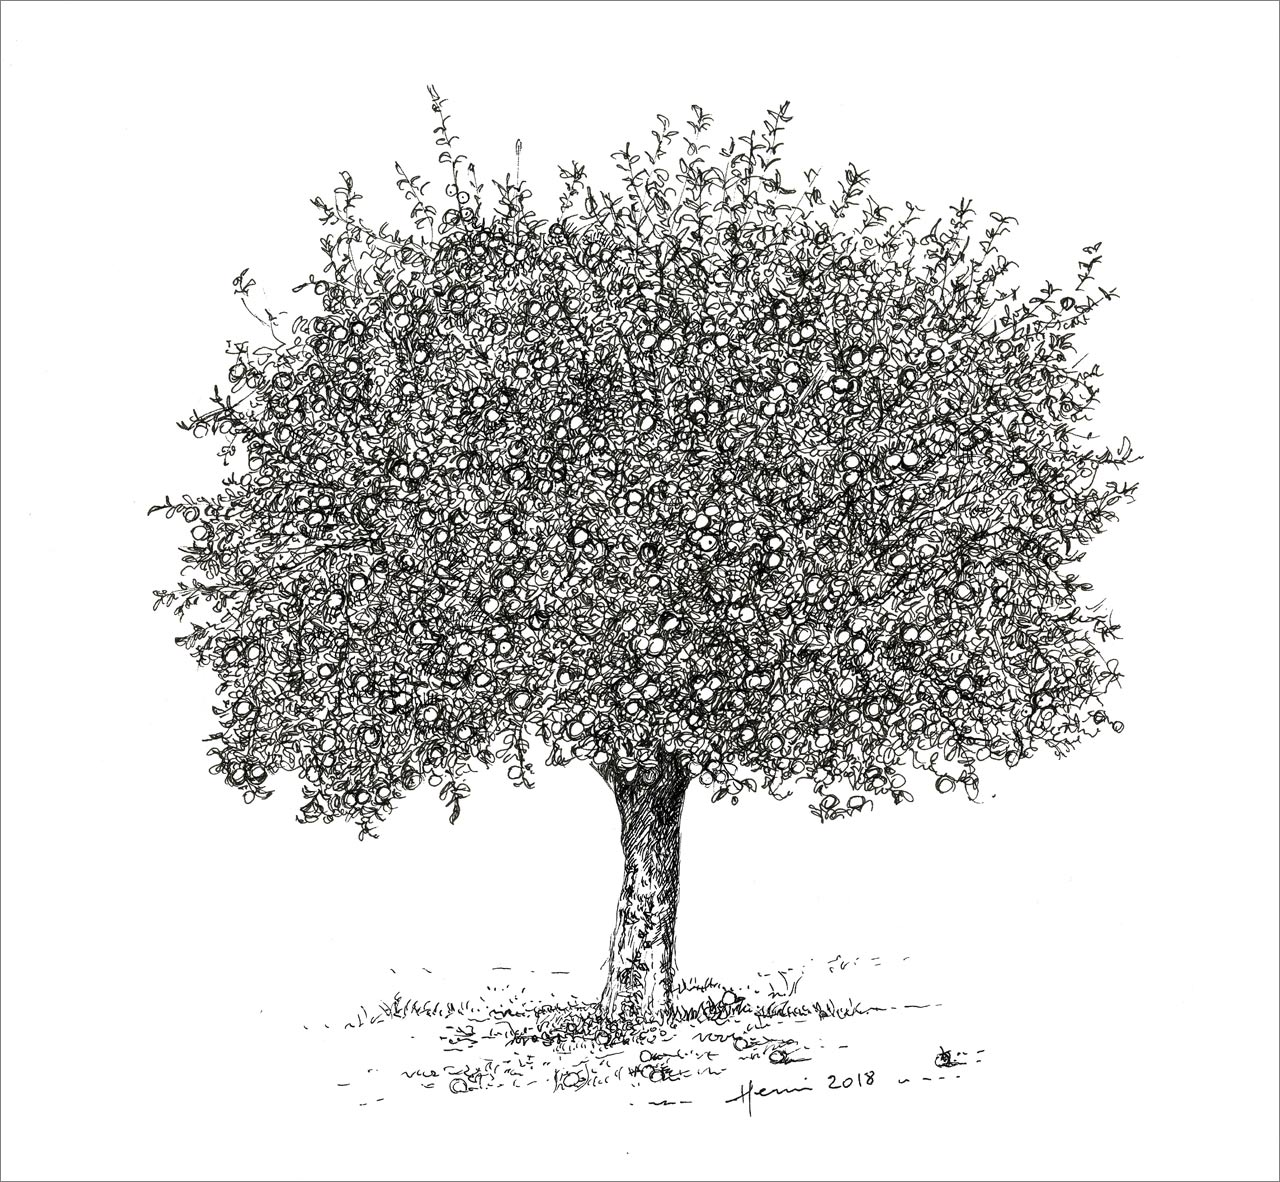 Drawing Henri Blanc, Dessin, plume, ink, encre de chine, tree, arbre, pommier, apple-tree,